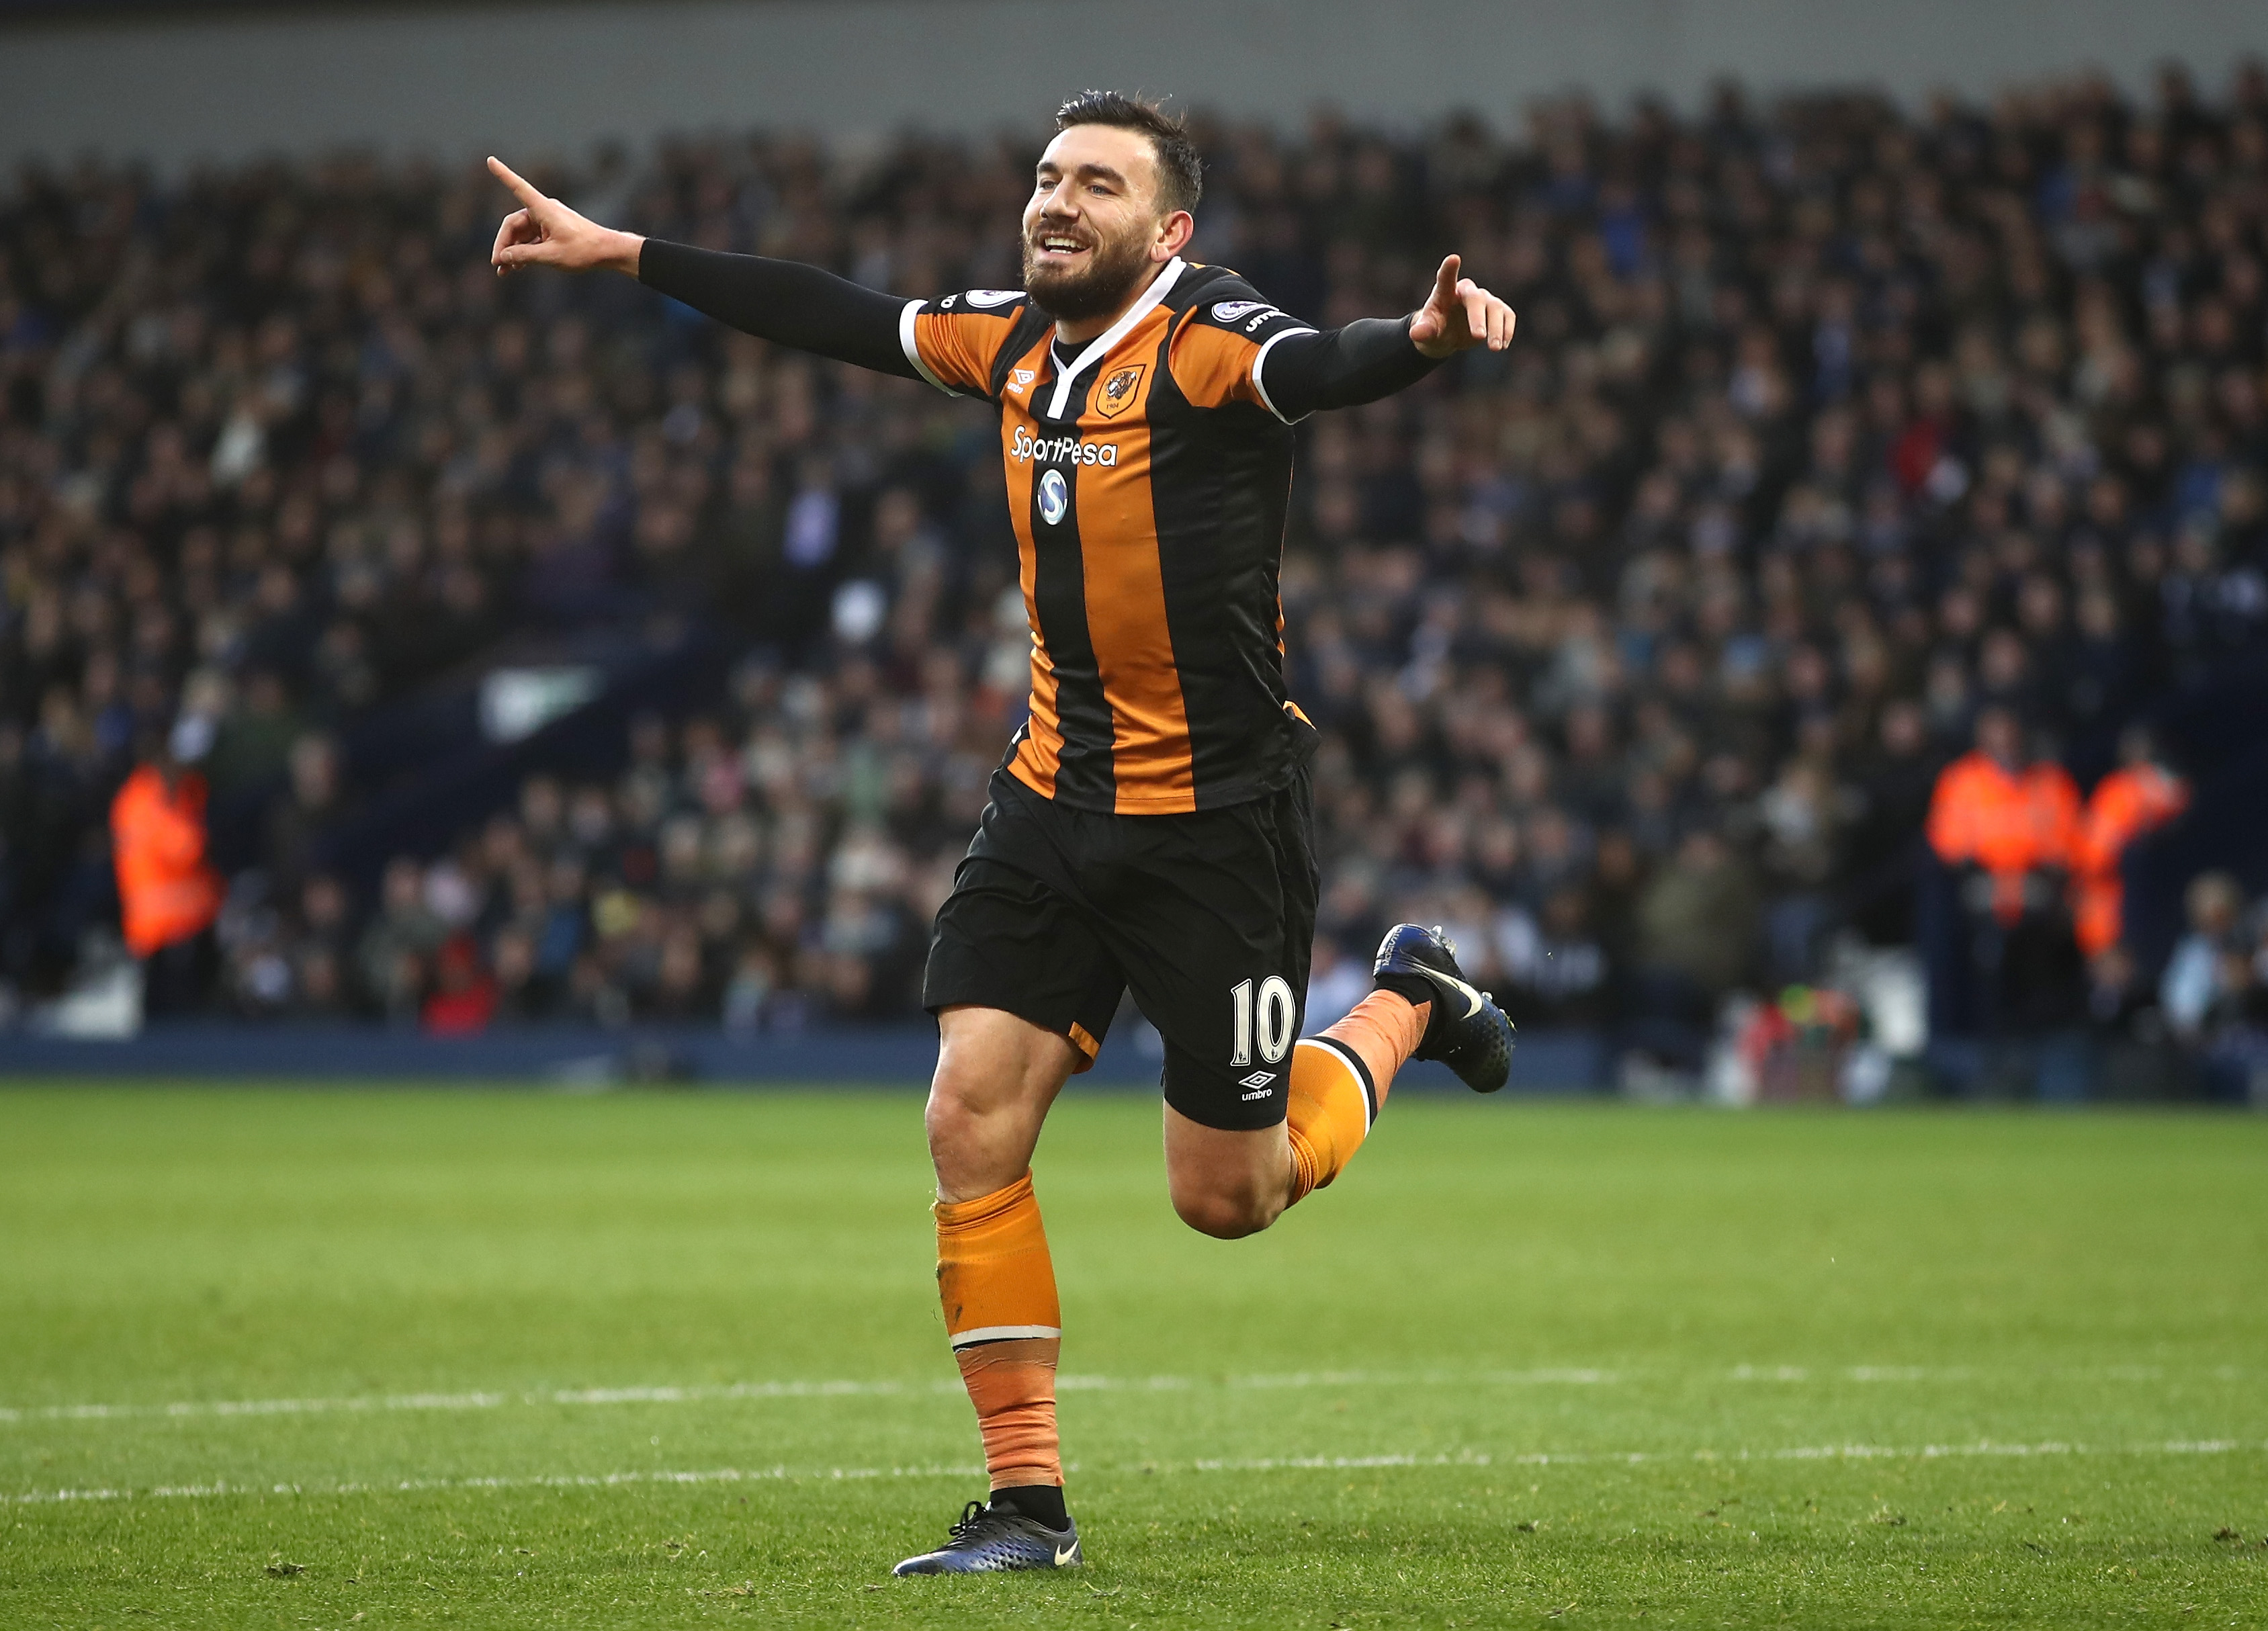 West Ham confirm transfer of Robert Snodgrass from Hull City